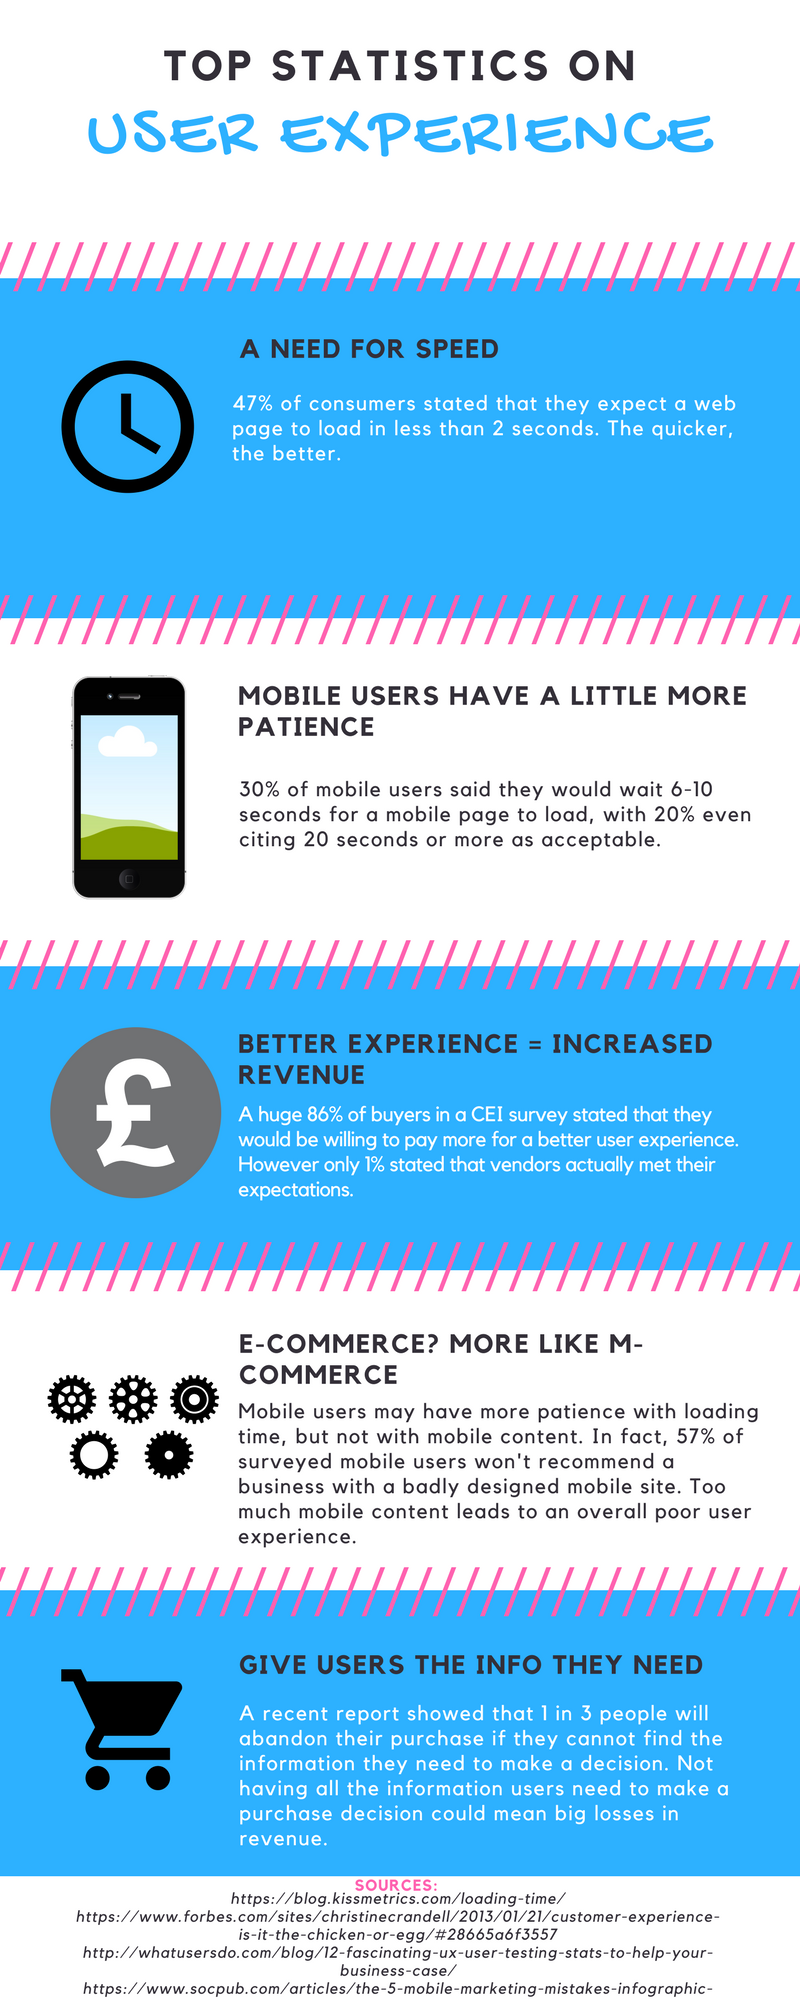 Infographic showing the top statistics to give an insight into how user experience influences success in the e-commerce arena.